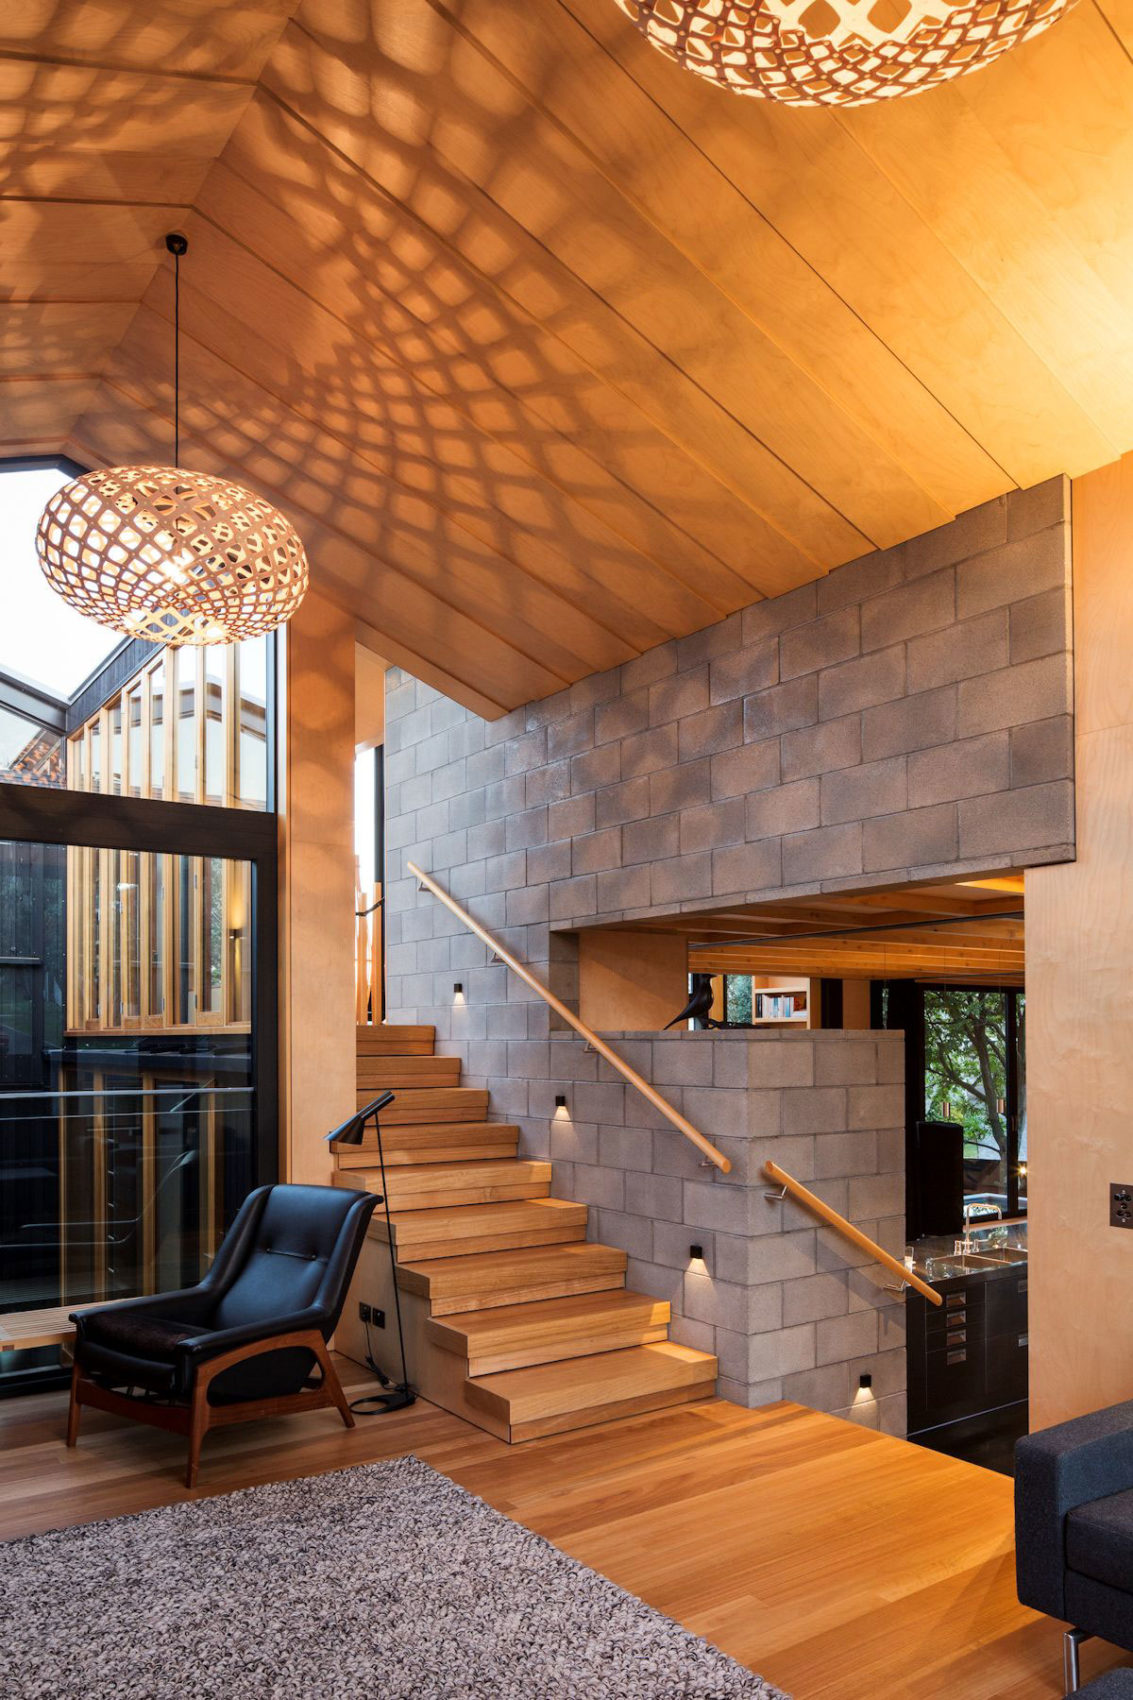 Boatsheds by Strachan Group Arch & Rachael Rush (11)